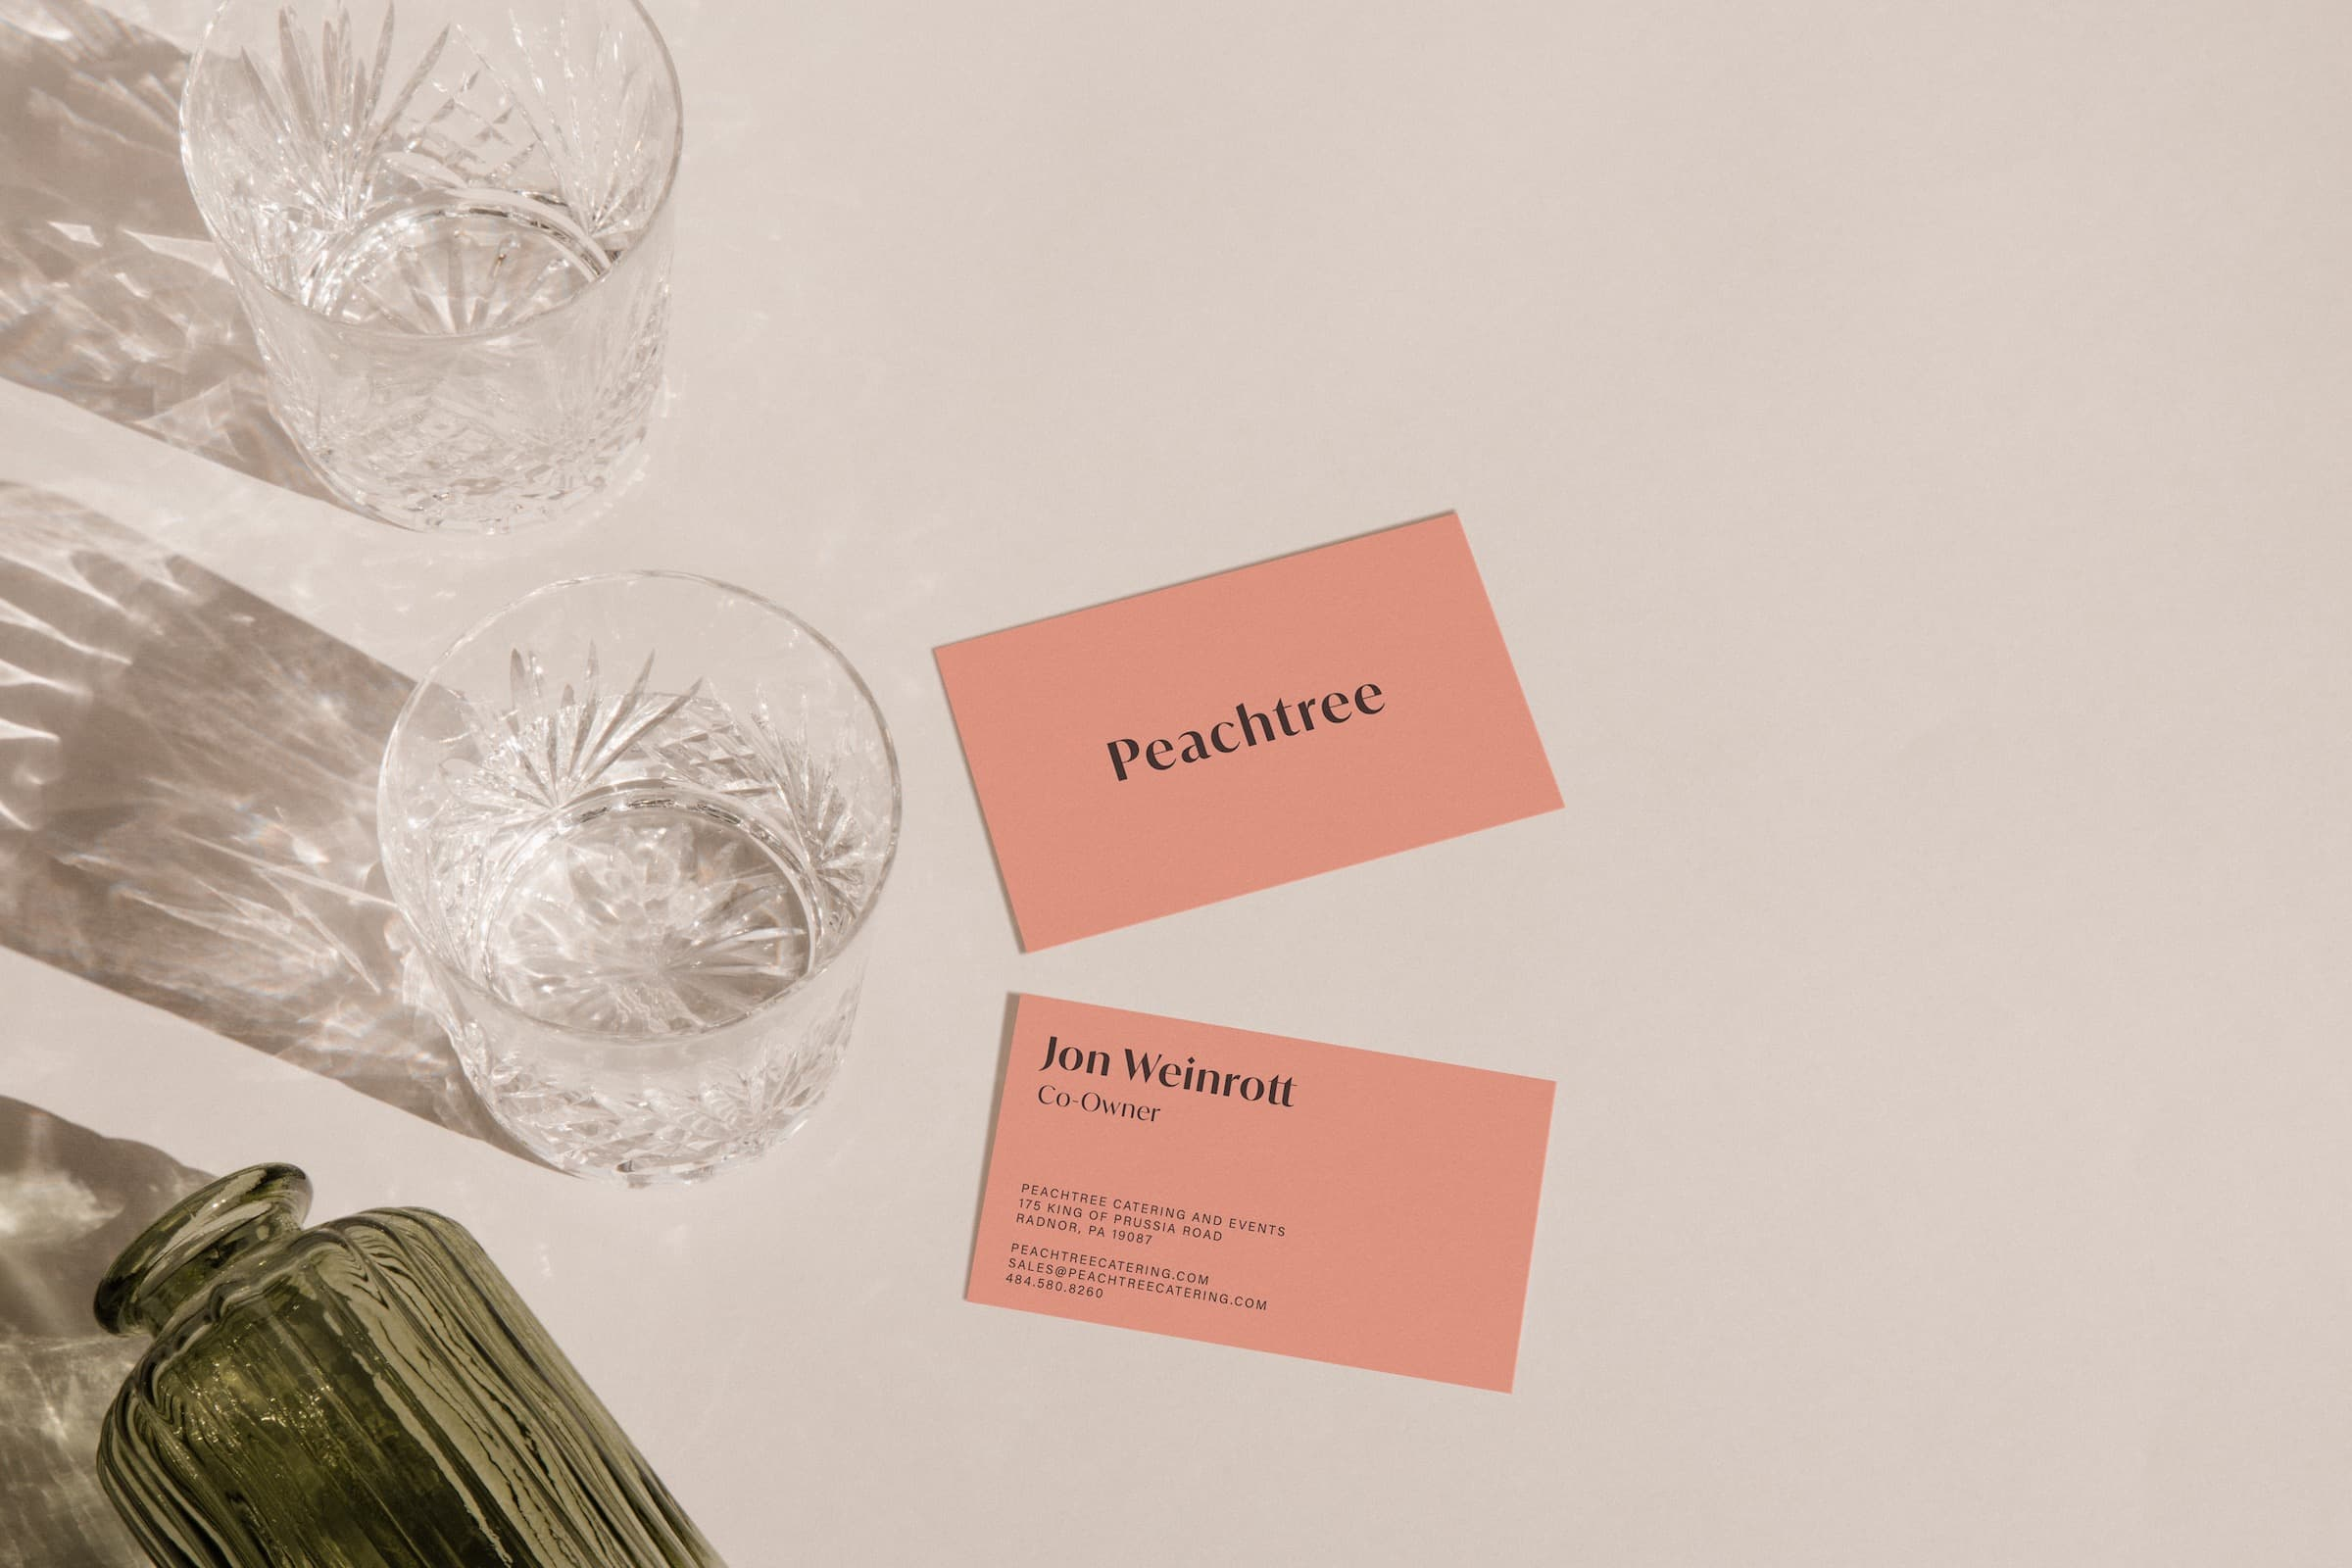 Peachtree business cards on a table, next to a few glass cups.